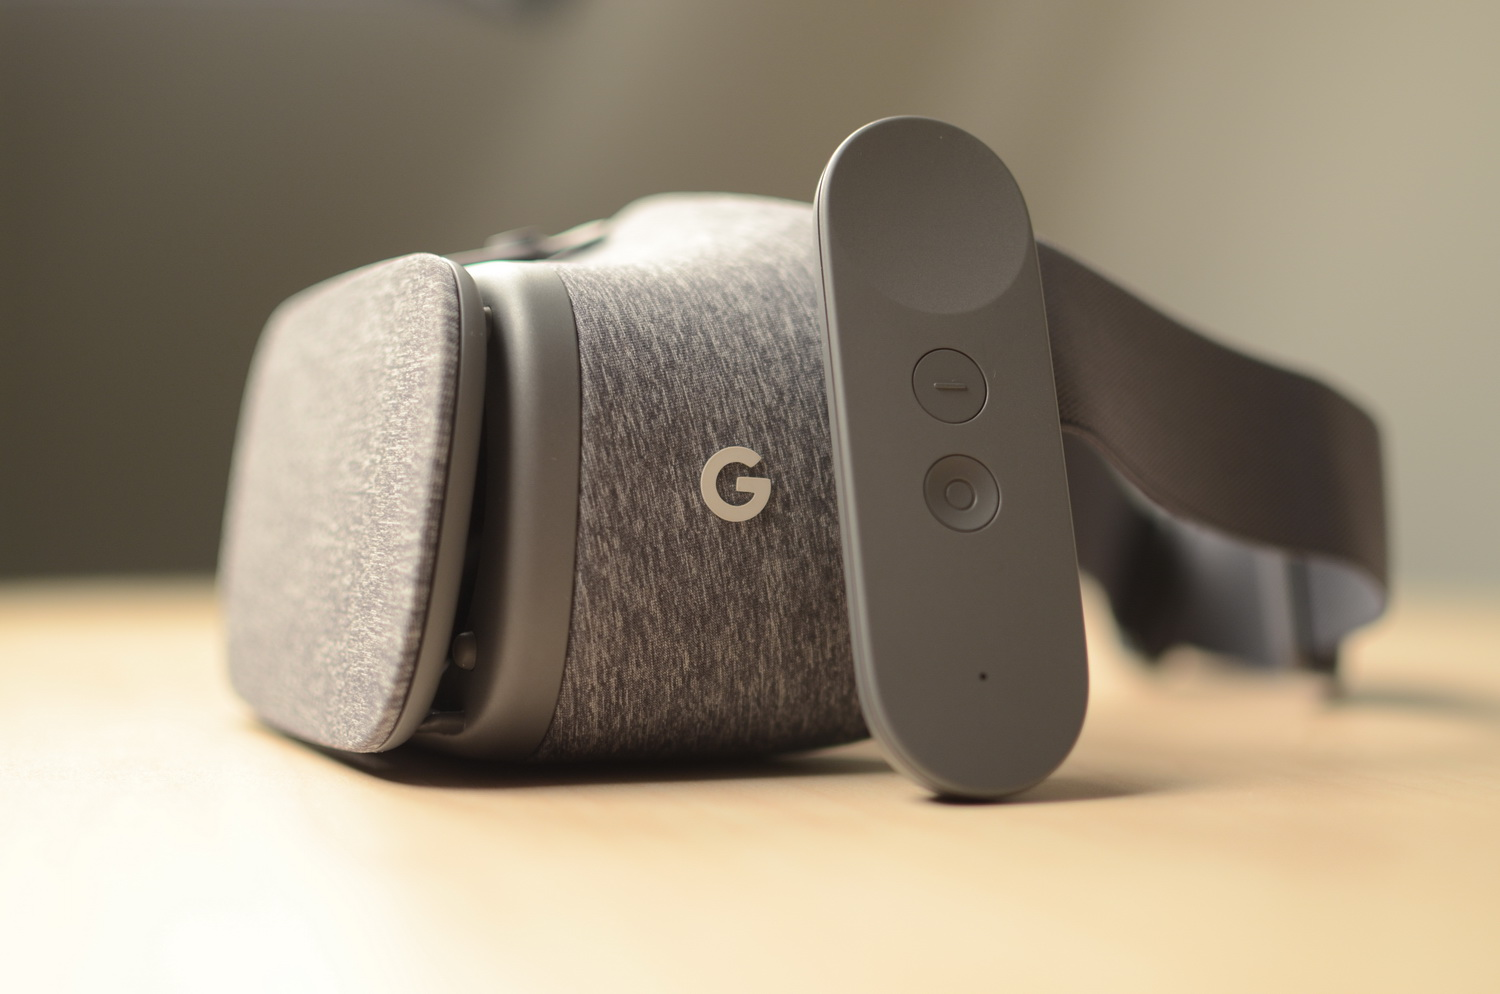 ZTE Axon 7 Android Nougat Update Supports Google Daydream VR